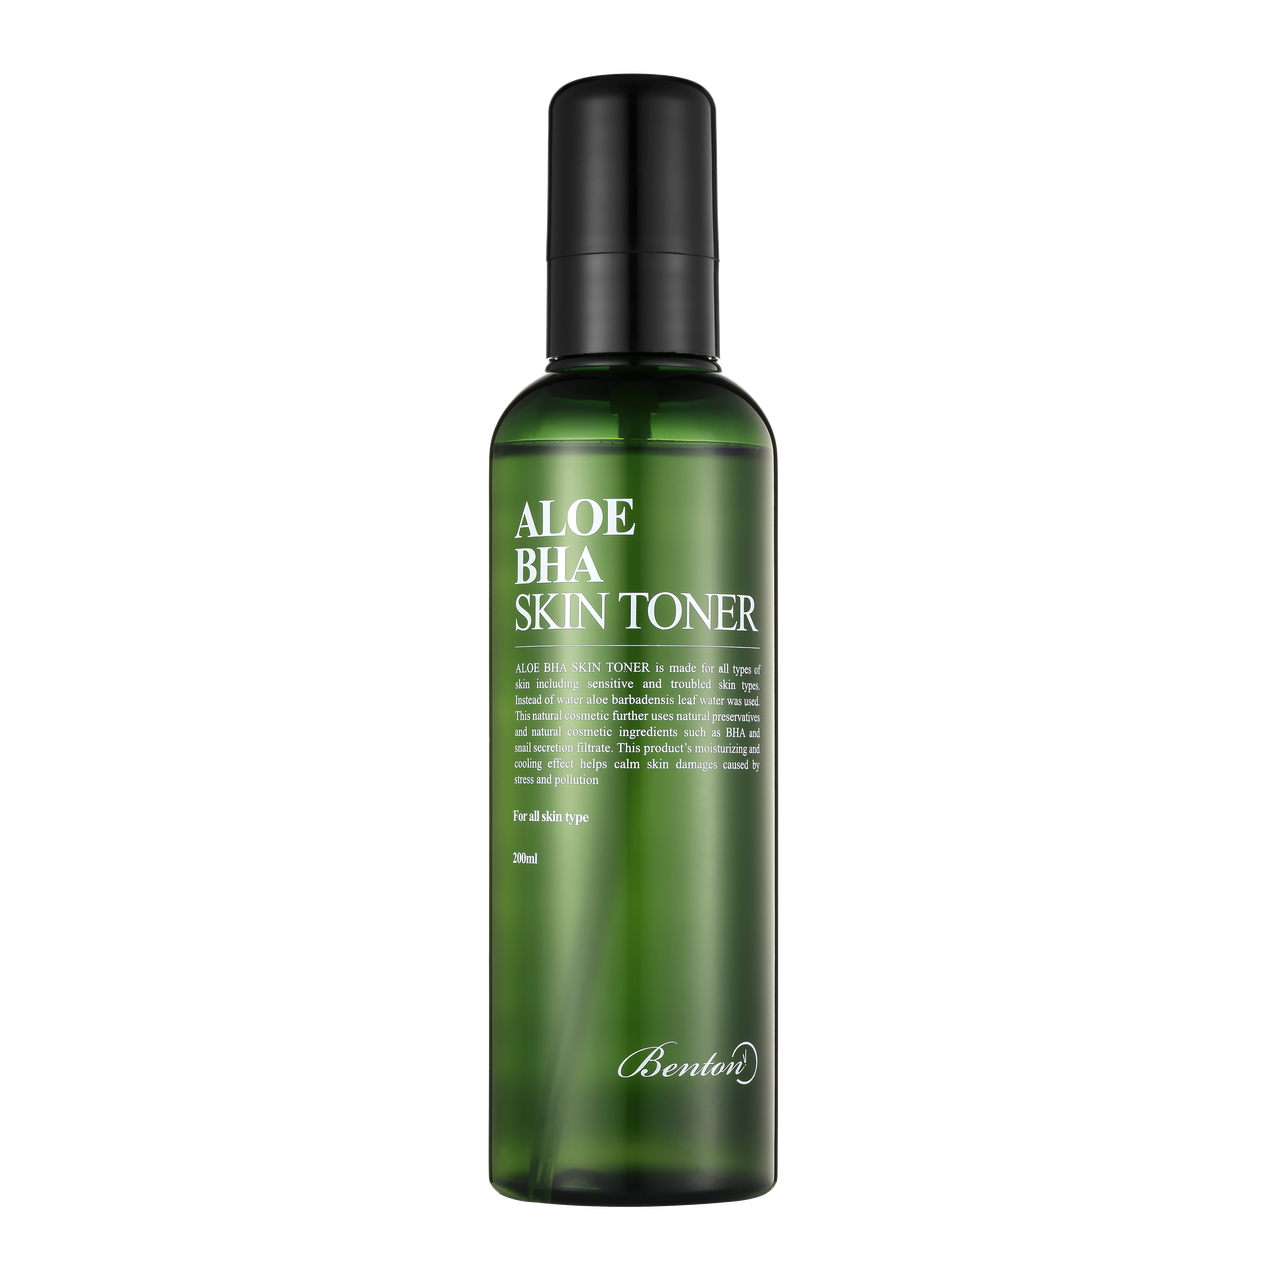 benton-aloe-bha-skin-toner-square-the-klog